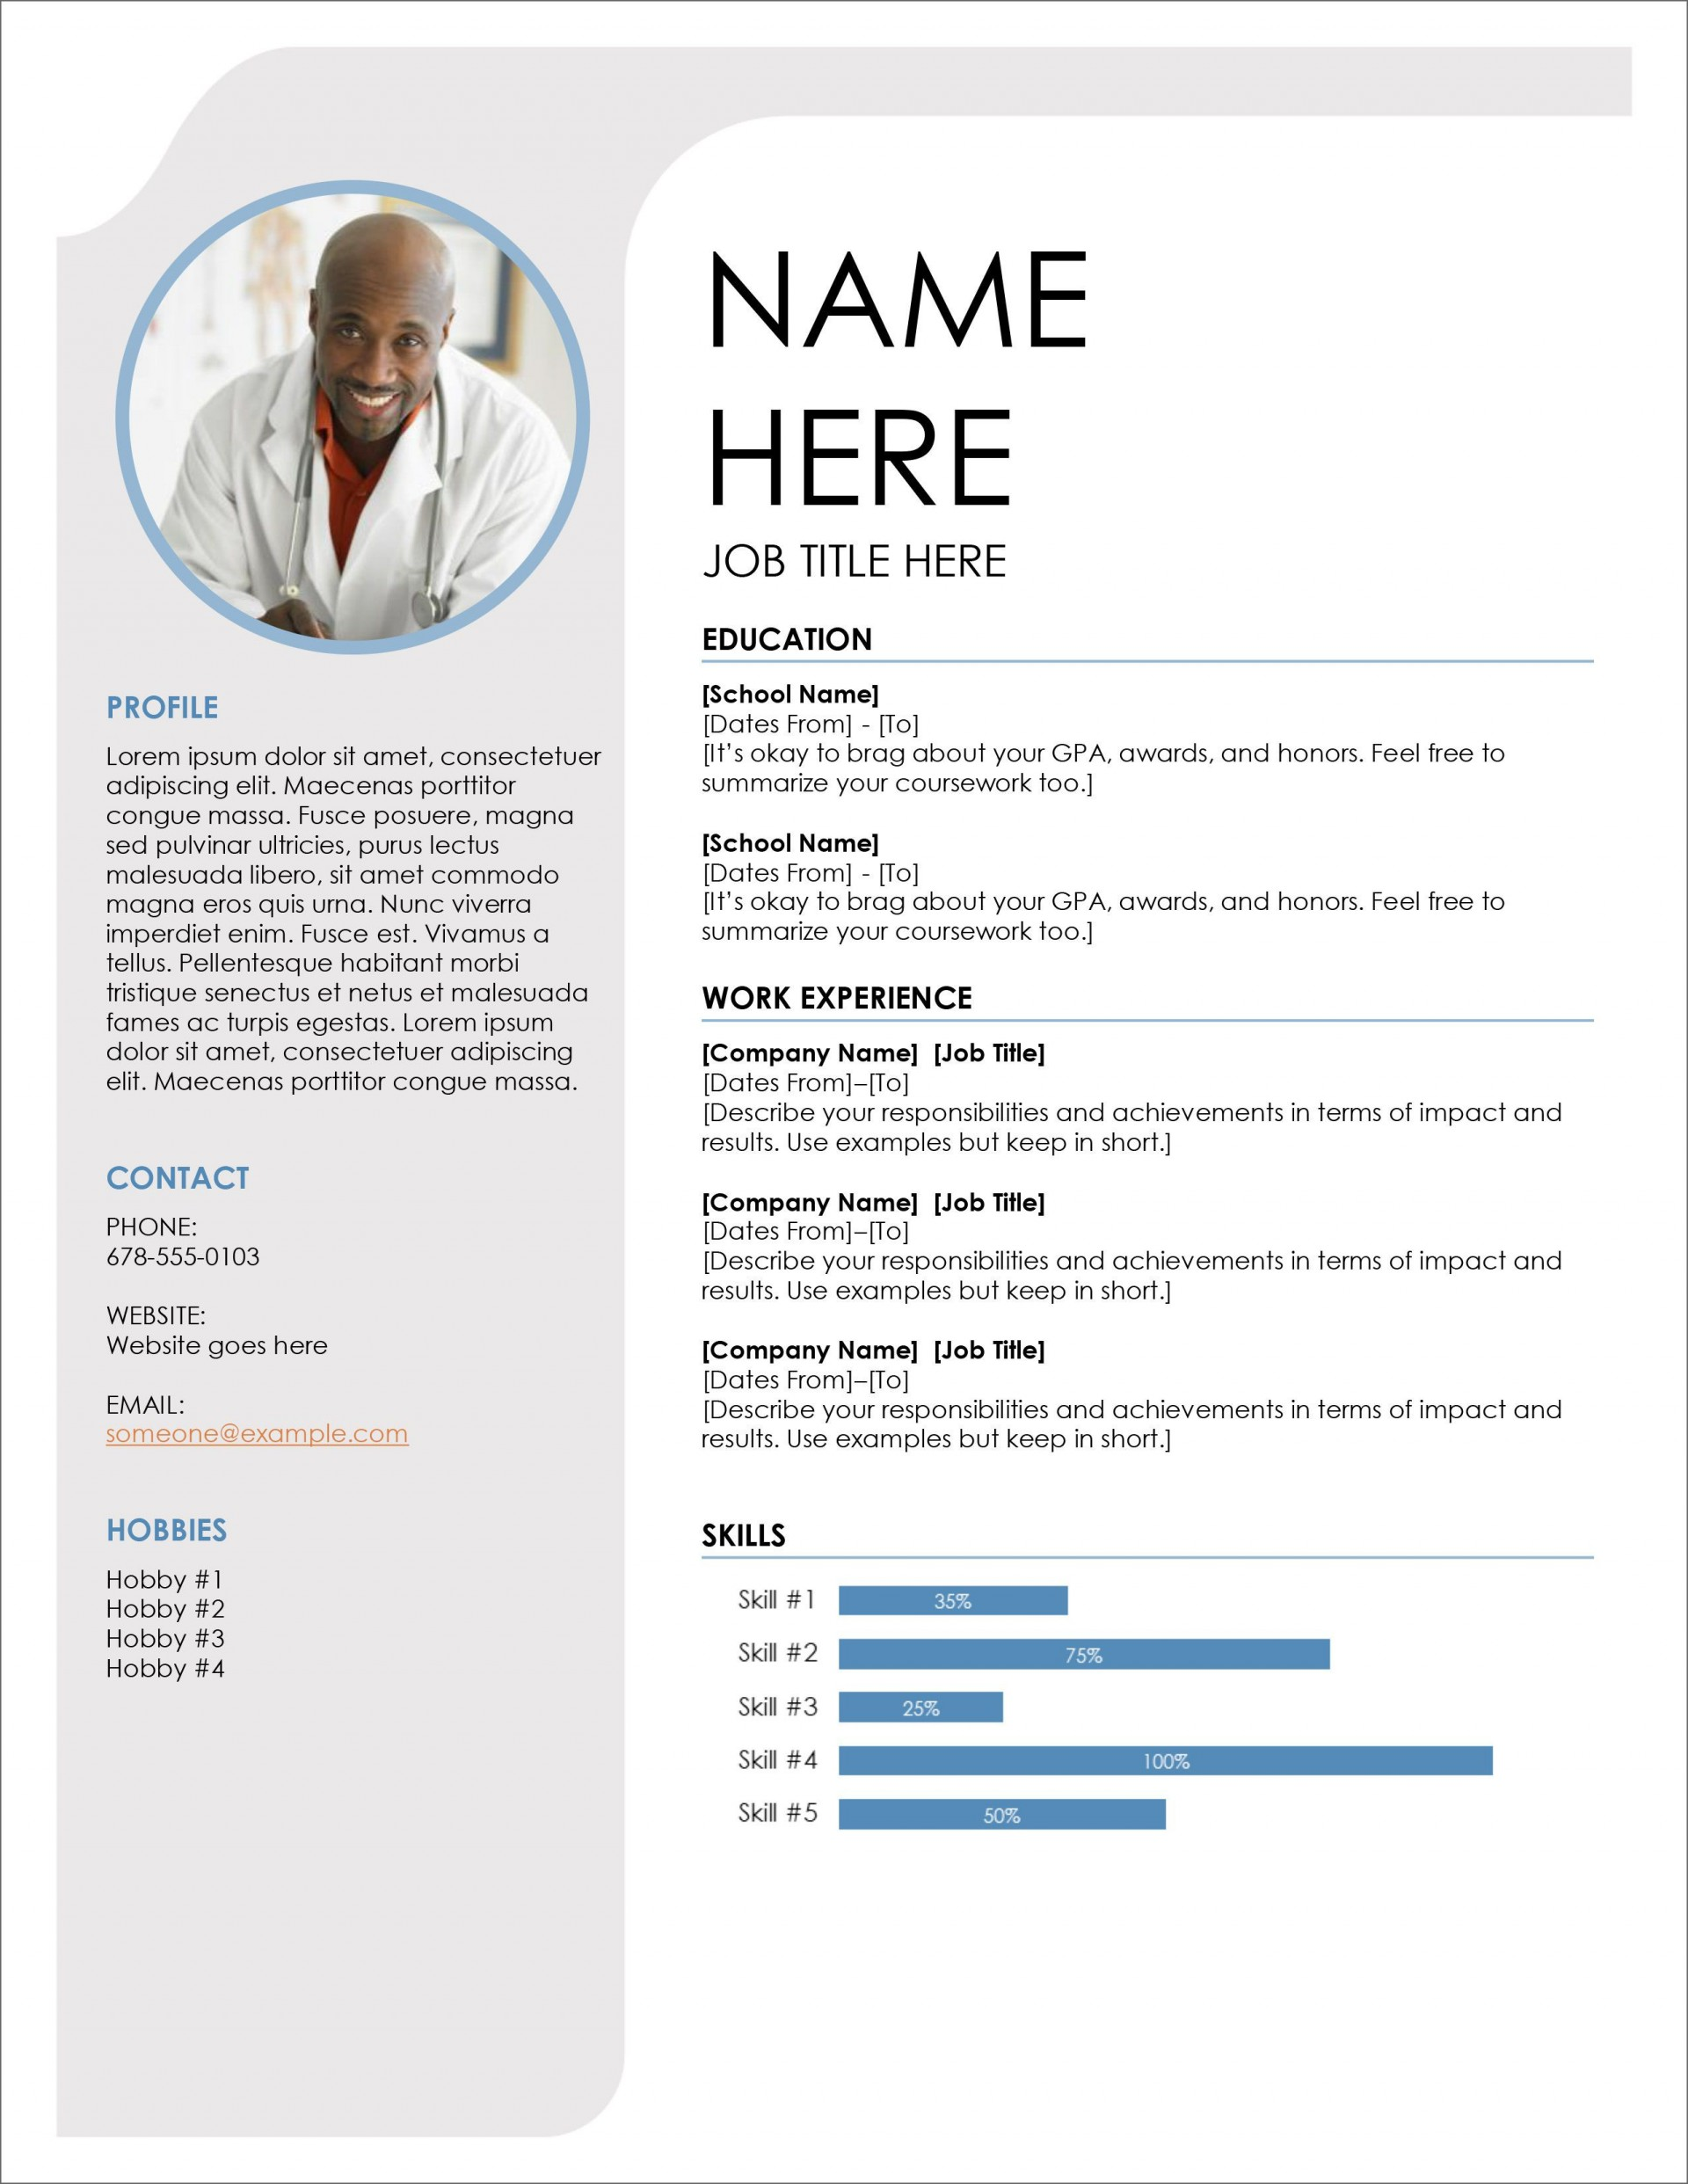 006 Remarkable Resume Template Word Free Download 2018 Photo  Modern Cv1920